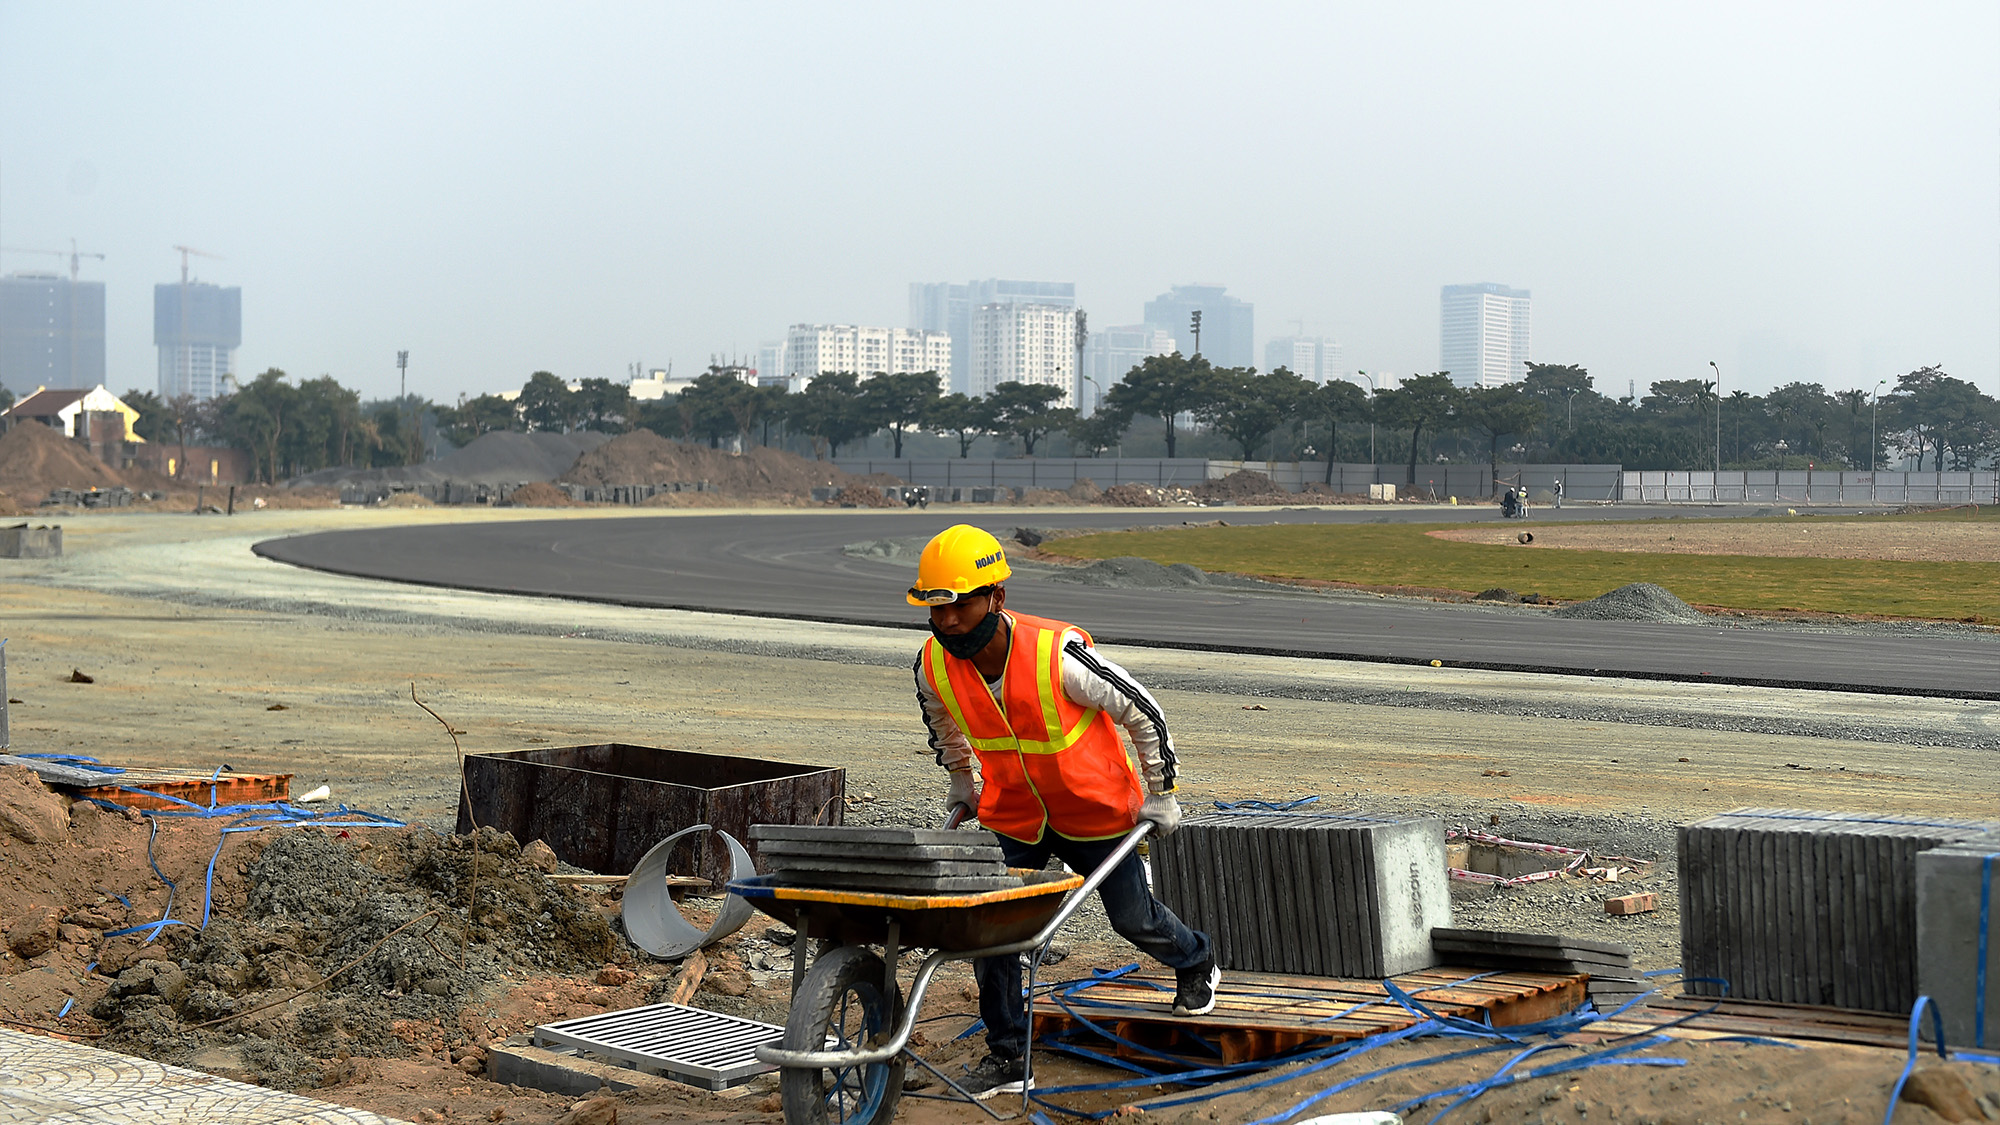 A worker with a wheelbarrow at the Hanoi Street Circuit in Vietnam